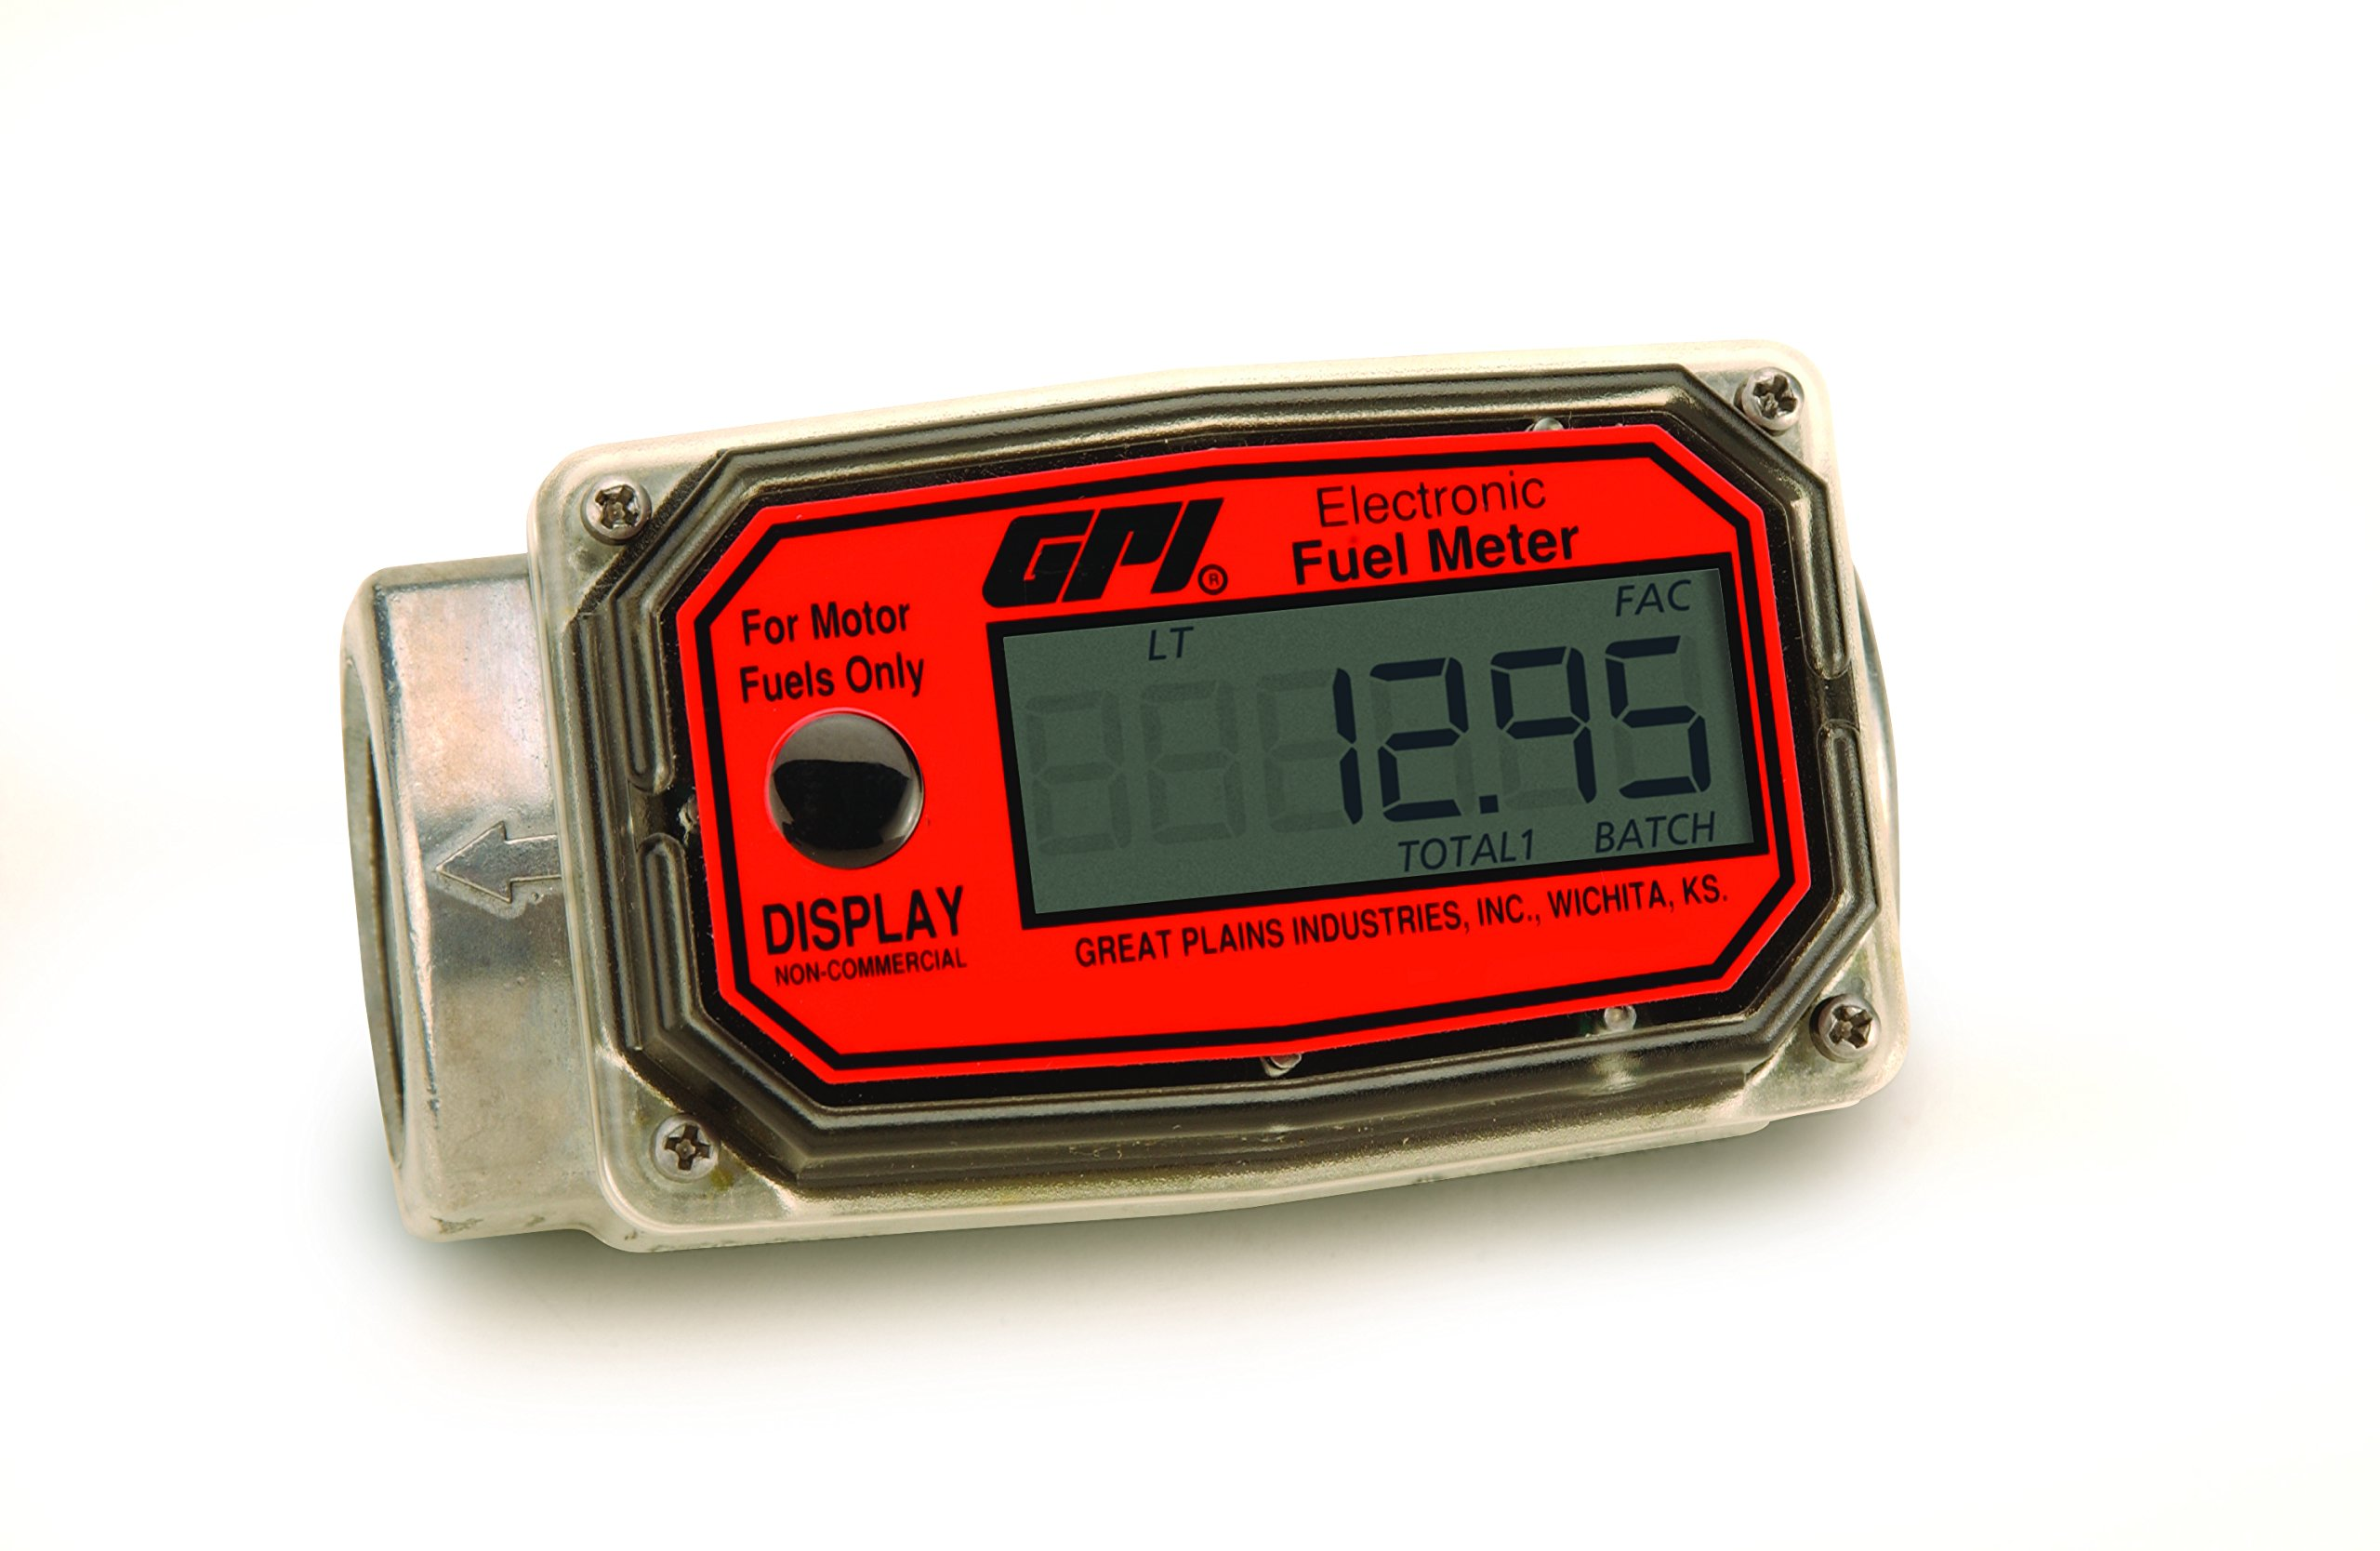 GPI 113255-2, 01A31LM Aluminum Turbine Fuel Flowmeter with Digital LCD Display, 10-100 LPM, 1-Inch FNPT Inlet/Outlet, 0.75-Inch Reducer Bushings